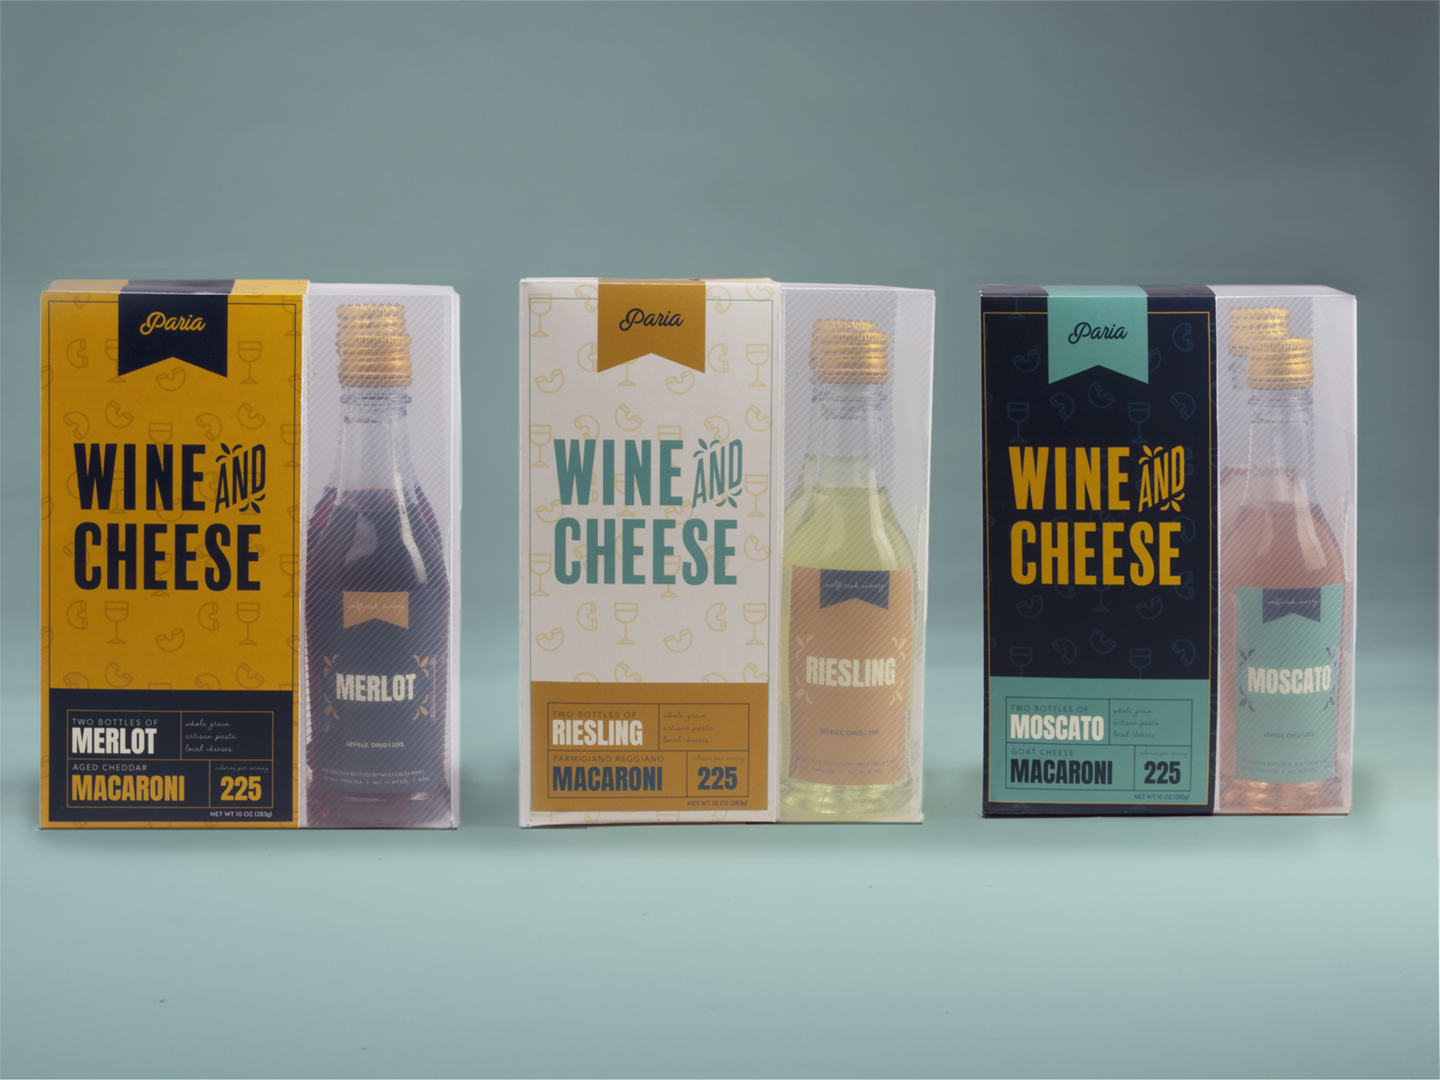 Paria: Wine & Cheese mac and cheese wine branding packaging design packaging design typography branding illustration